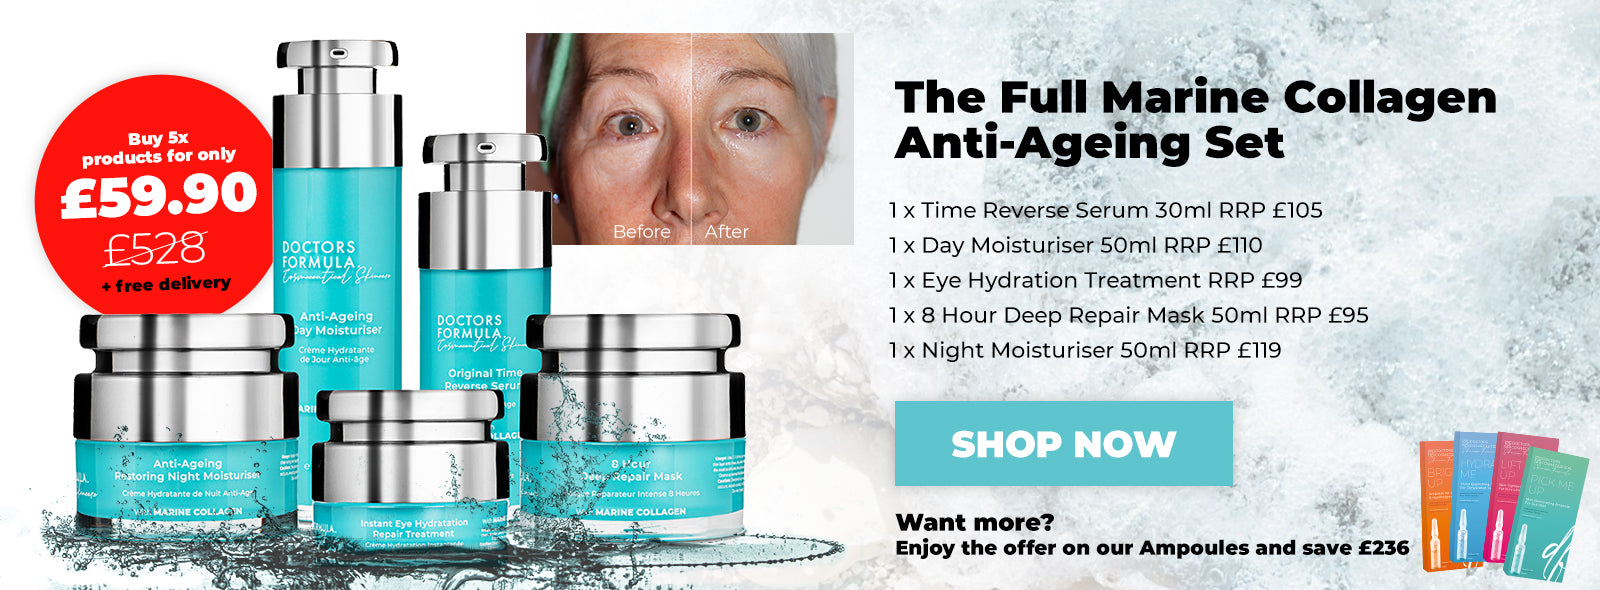 Save £468.10 Buy The Doctors Formula Marine Collagen Full Anti-Ageing set - 5 products - All Skin Type